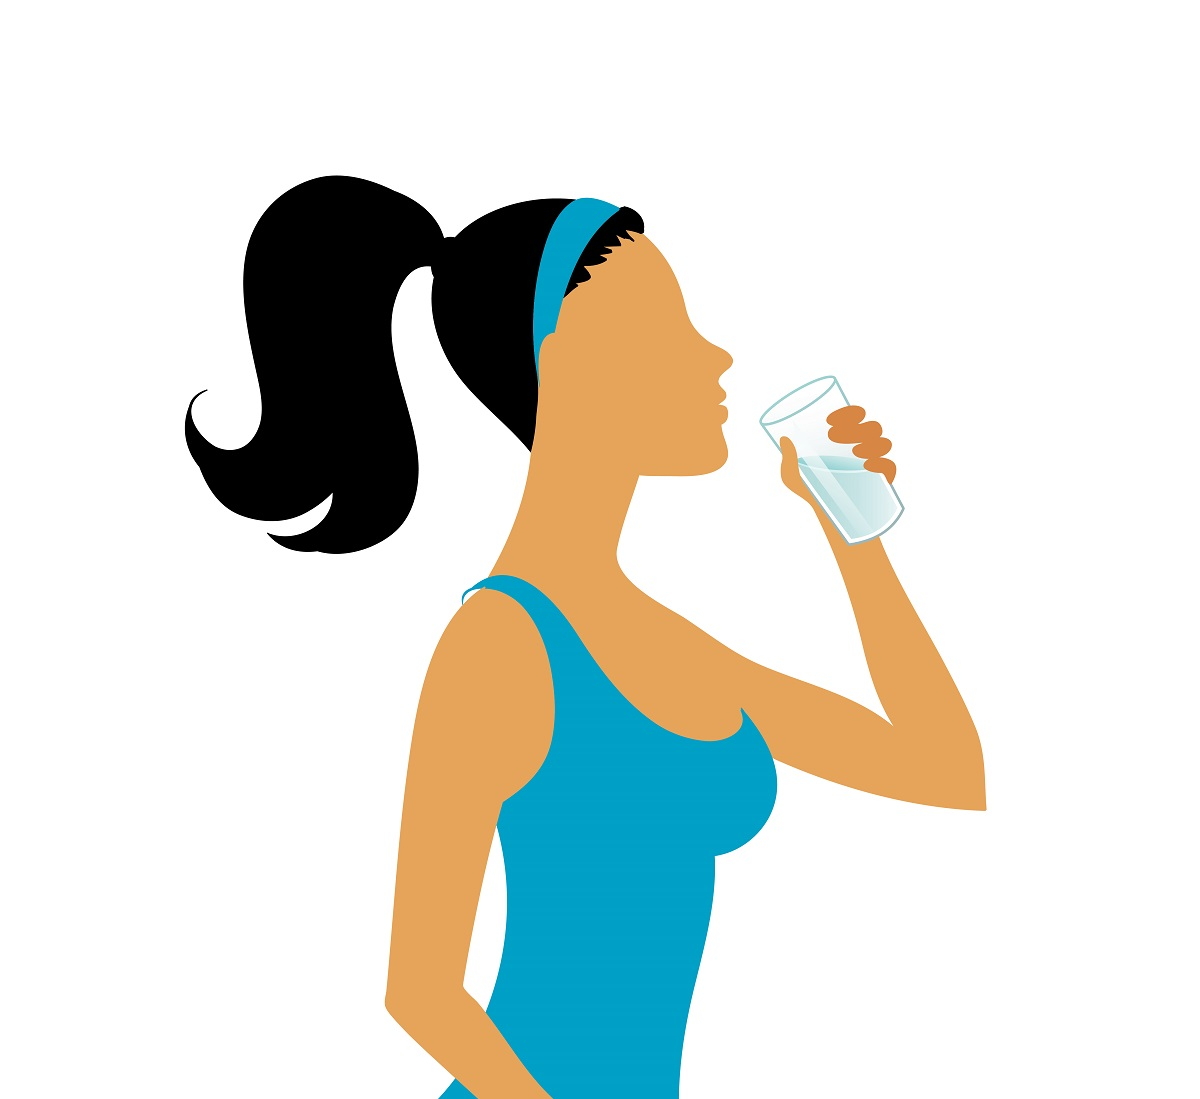 10. Stay hydrated